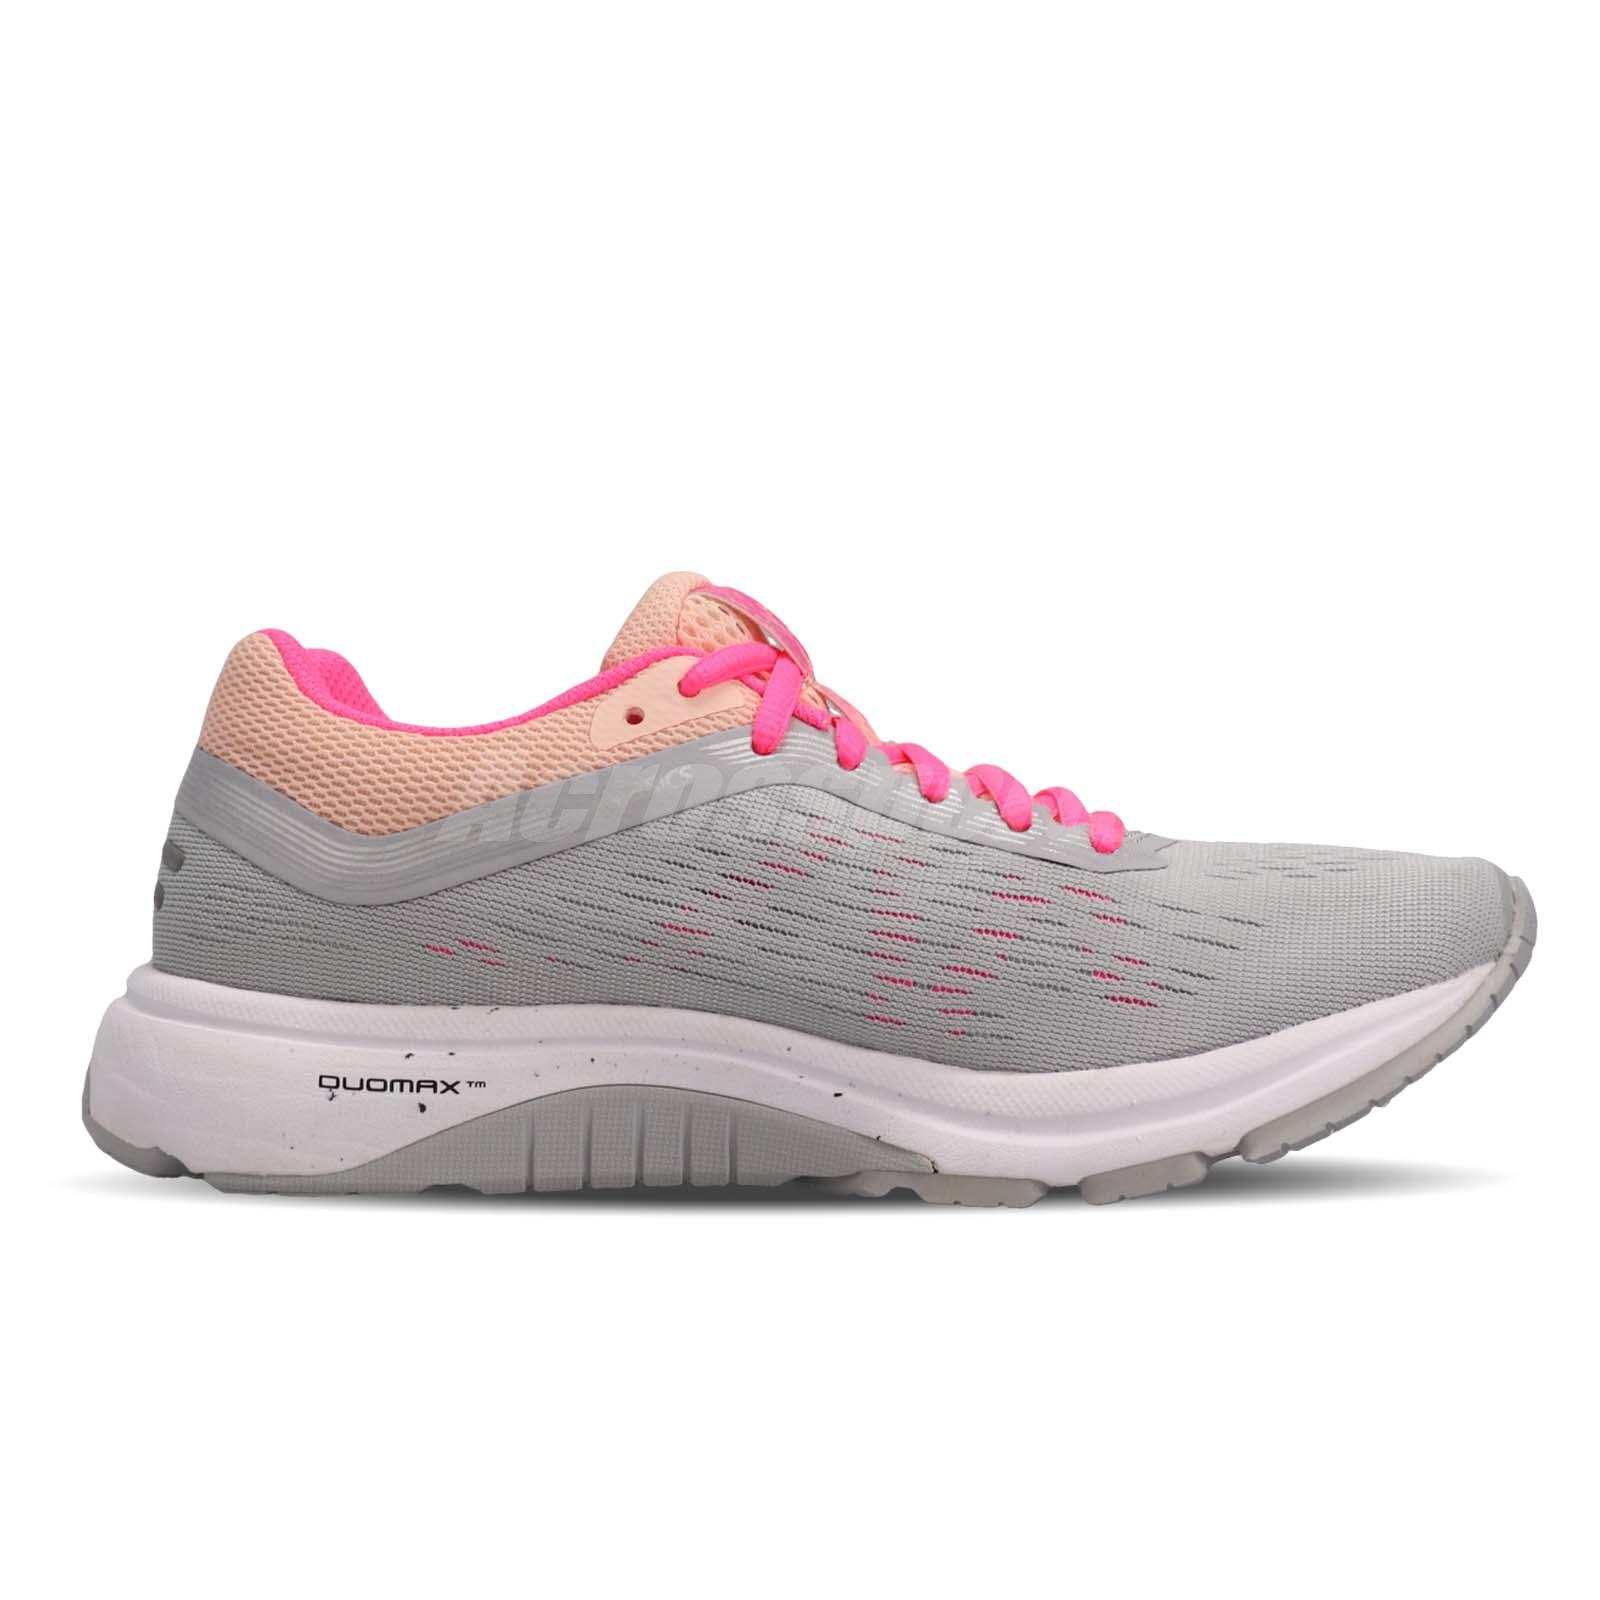 33d67696 Details about Asics GT-1000 7 Grey Silver Pink Women Running Shoes Sneakers  1012A030-022